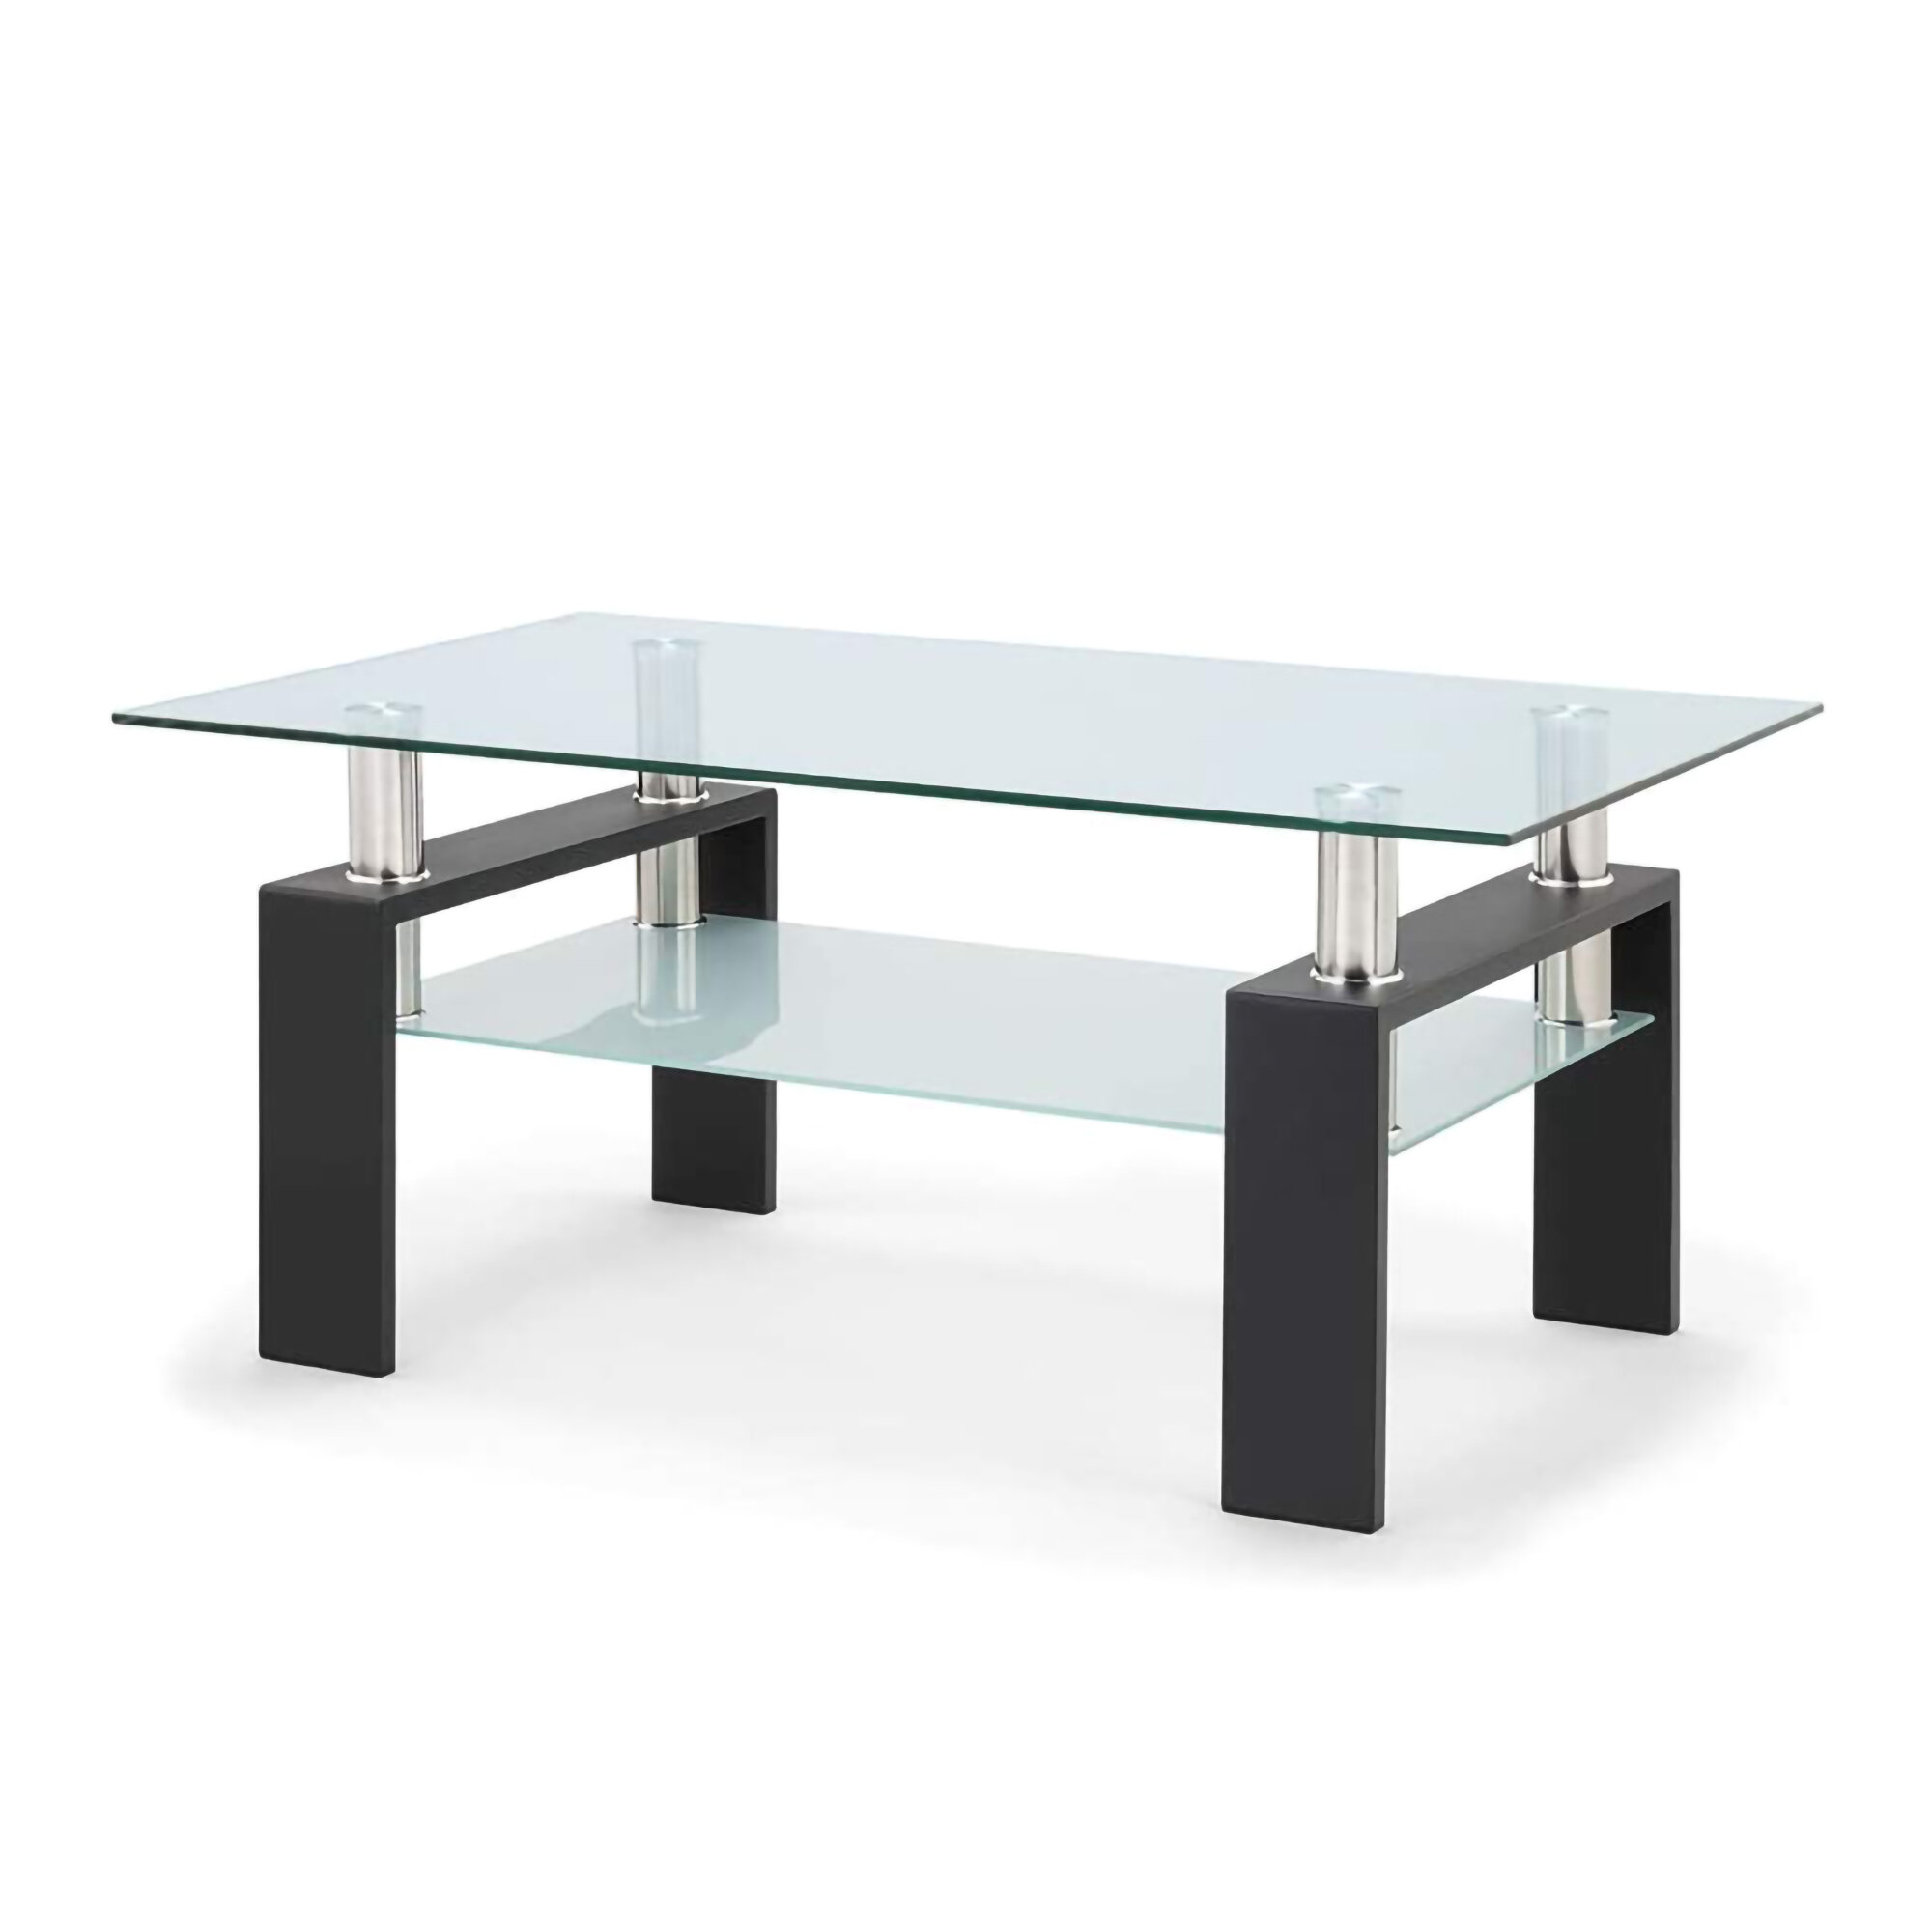 Picture of: Orren Ellis Modern Style 2 Tier Tempered Glass Coffee Table With Storage Shelf And Sturdy Metal Legs Side Table For Living Room Office